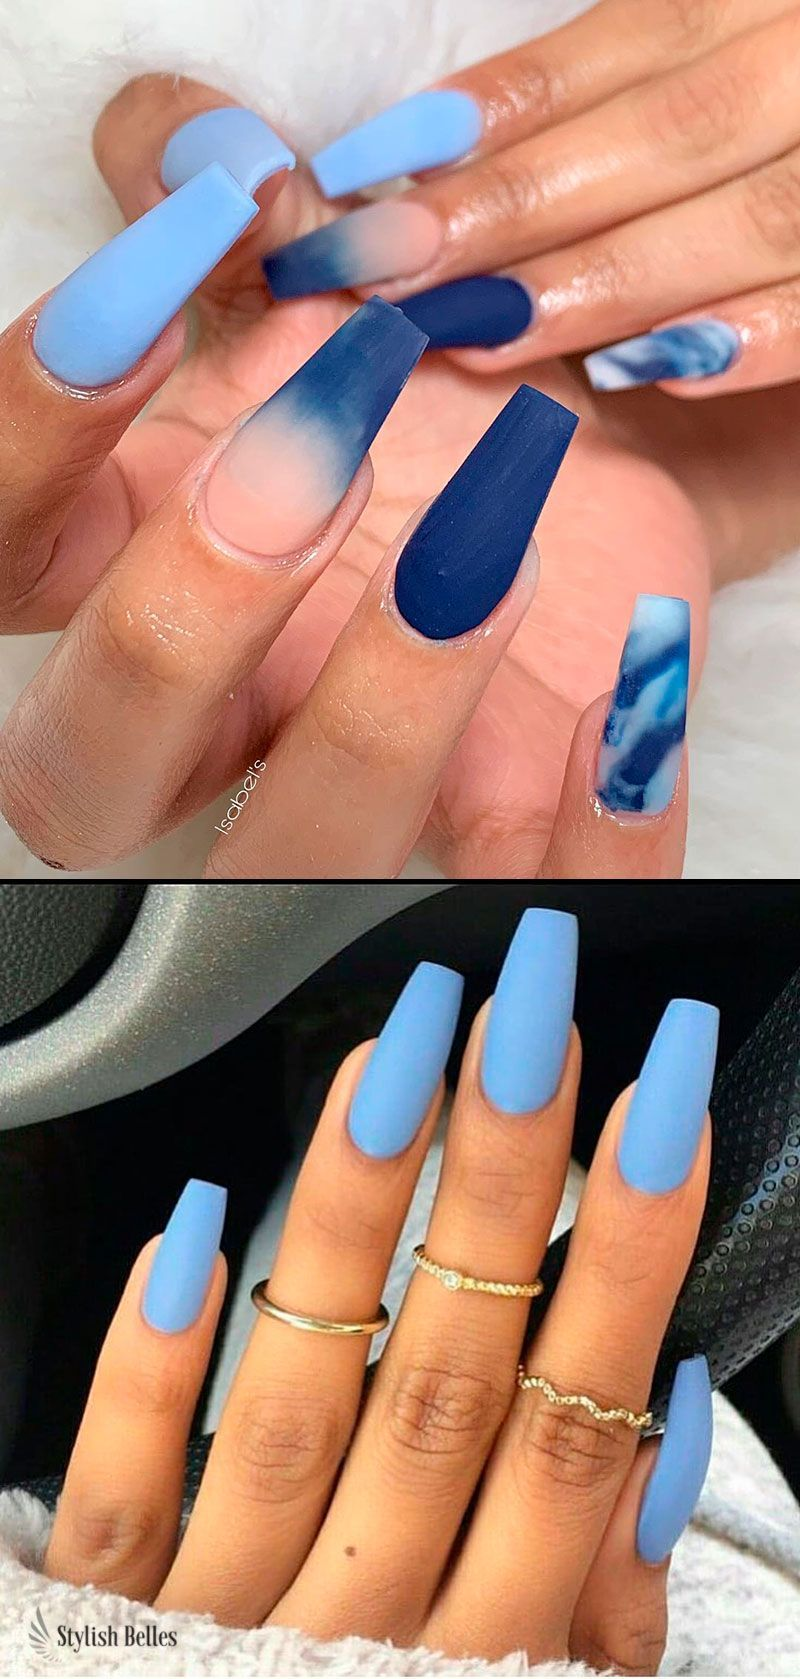 The Best Coffin Nails Ideas That Suit Everyone In 2020 Blue Acrylic Nails Blue Coffin Nails Coffin Nails Designs